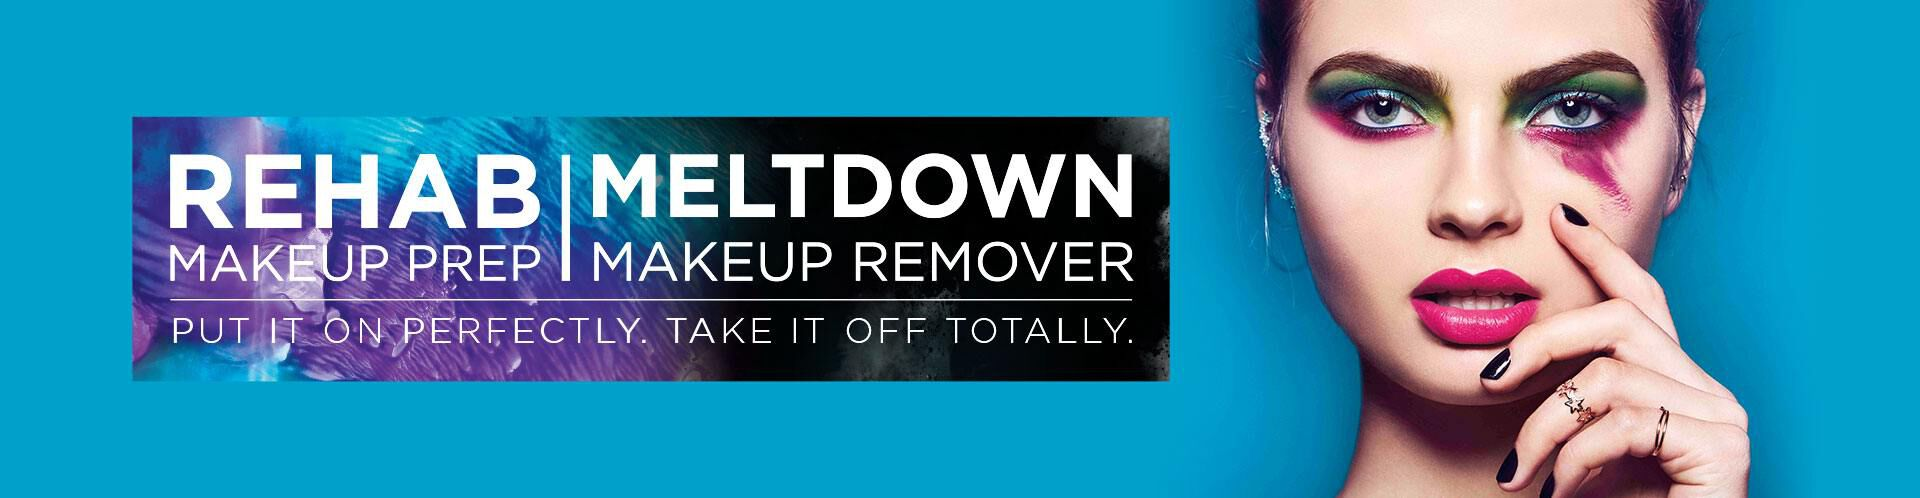 Rehab Makeup Prep | Meltdown Makeup Remover